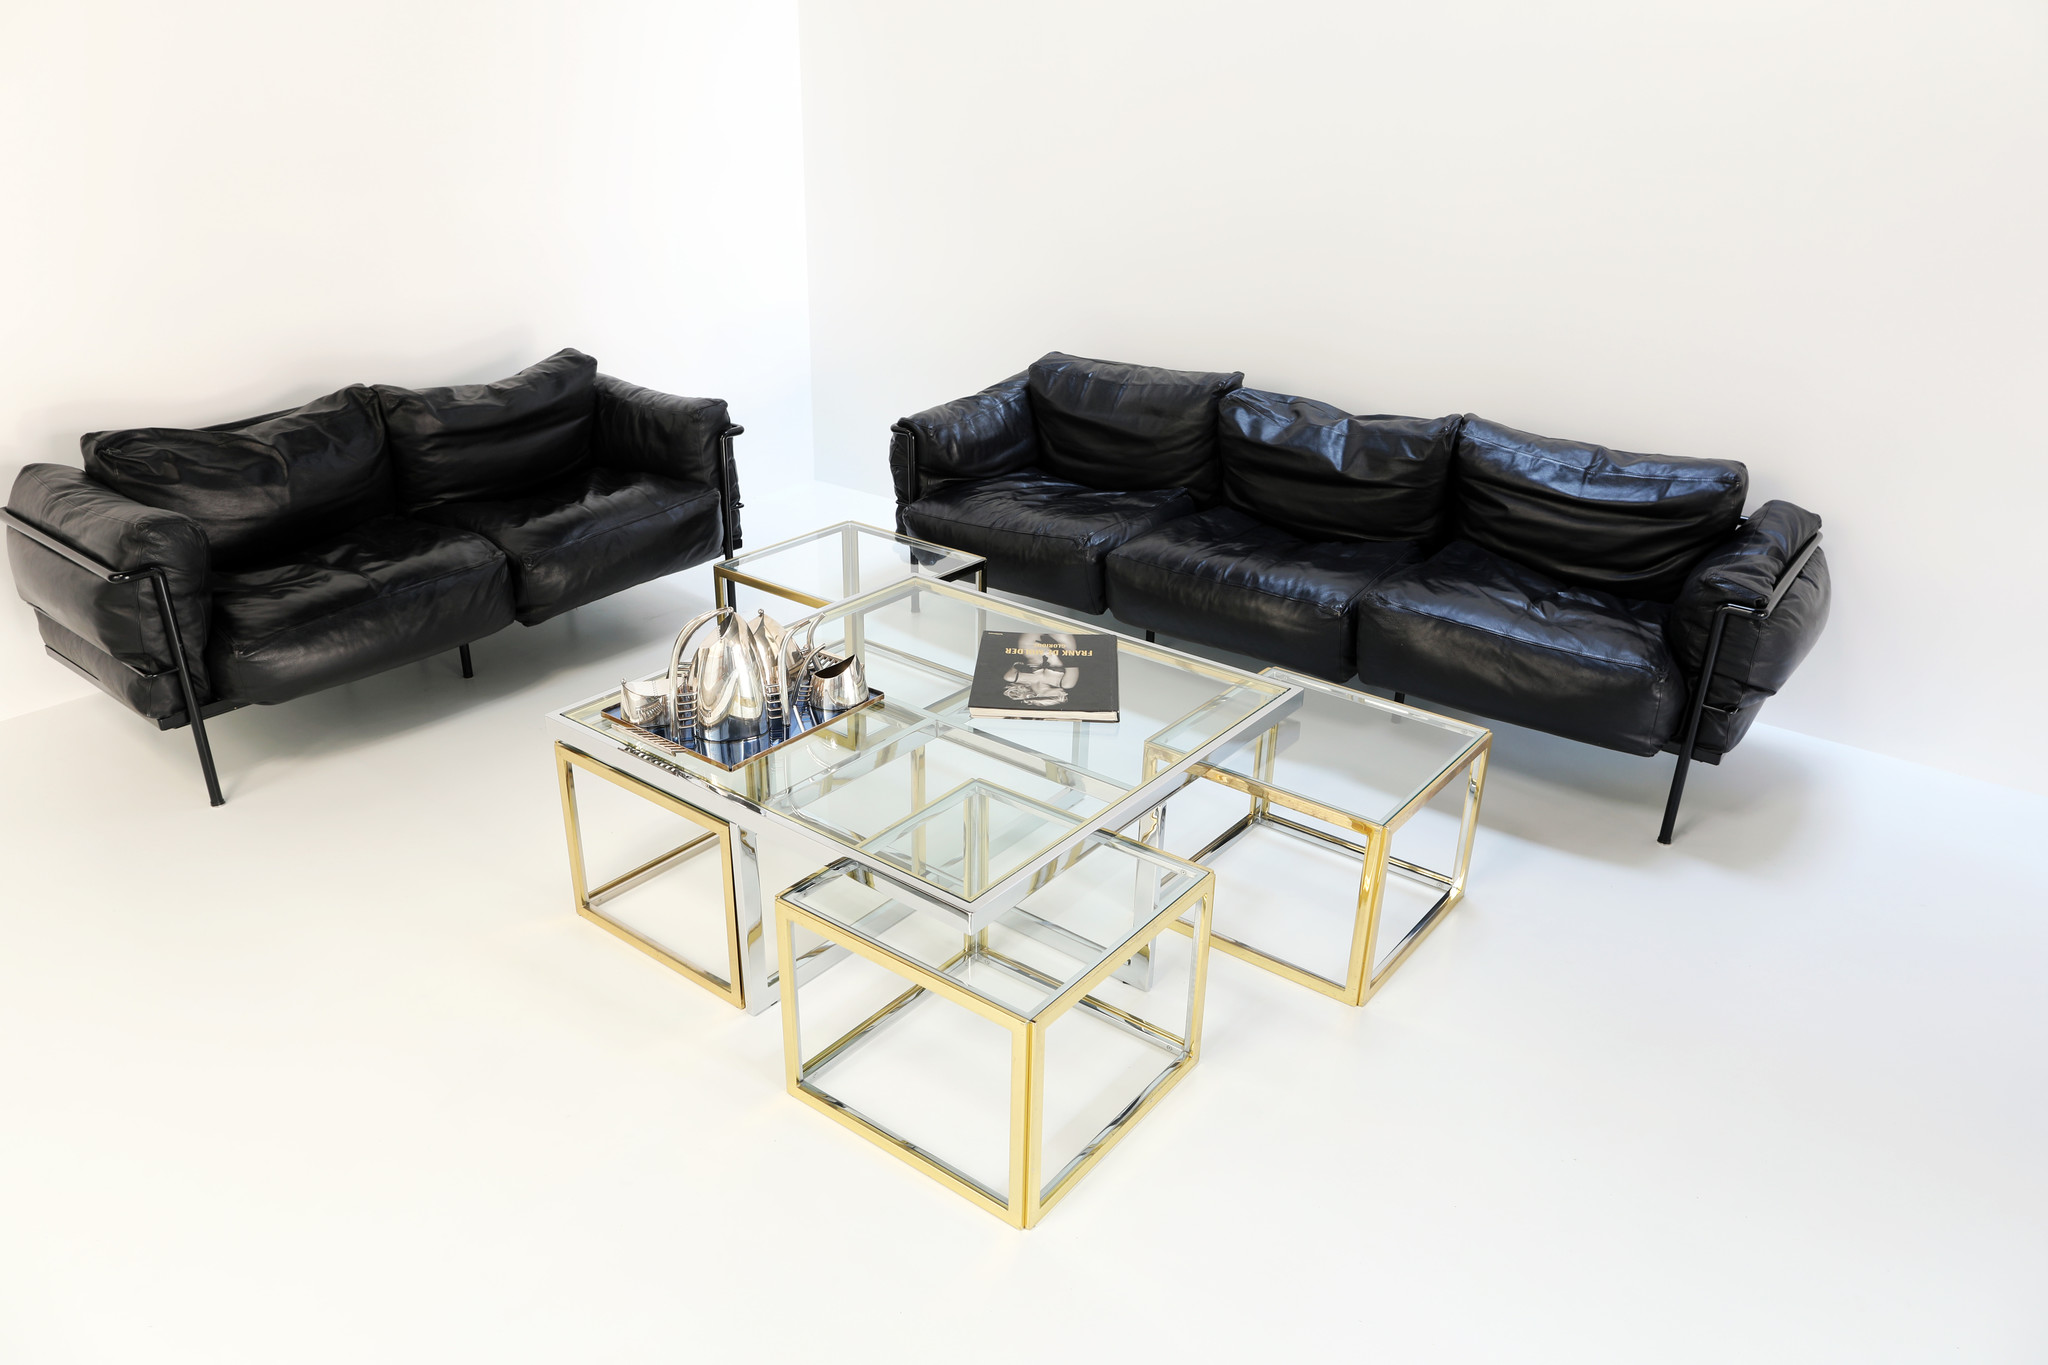 VINTAGE MAISON CHARLES COFFEE TABLE WITH FOUR SIDE TABLES, 1970